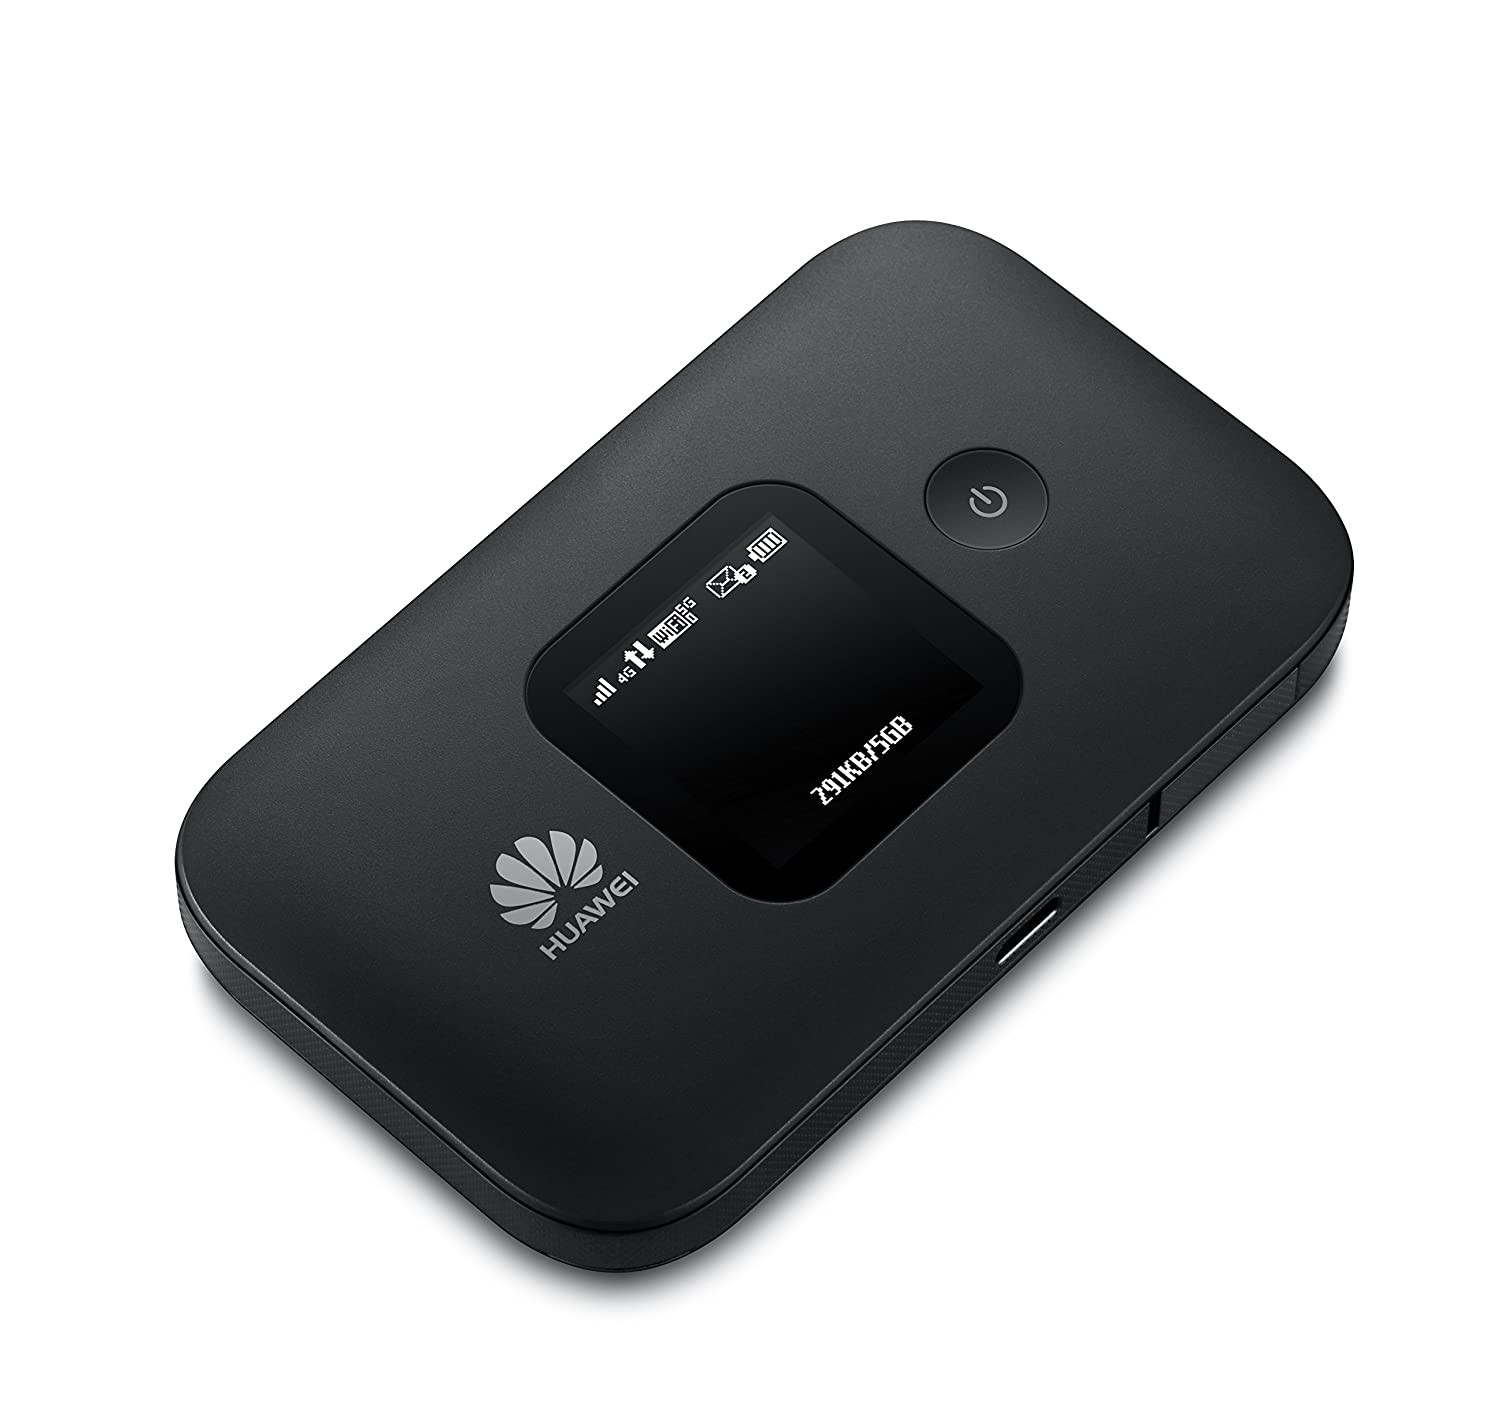 huawei e5577c. amazon.com: huawei e5577cs-321 150 mbps 4g lte \u0026 43.2 mpbs 3g mobile wifi hotspot (4g in europe, asia, middle east, africa globally) (black): cell e5577c